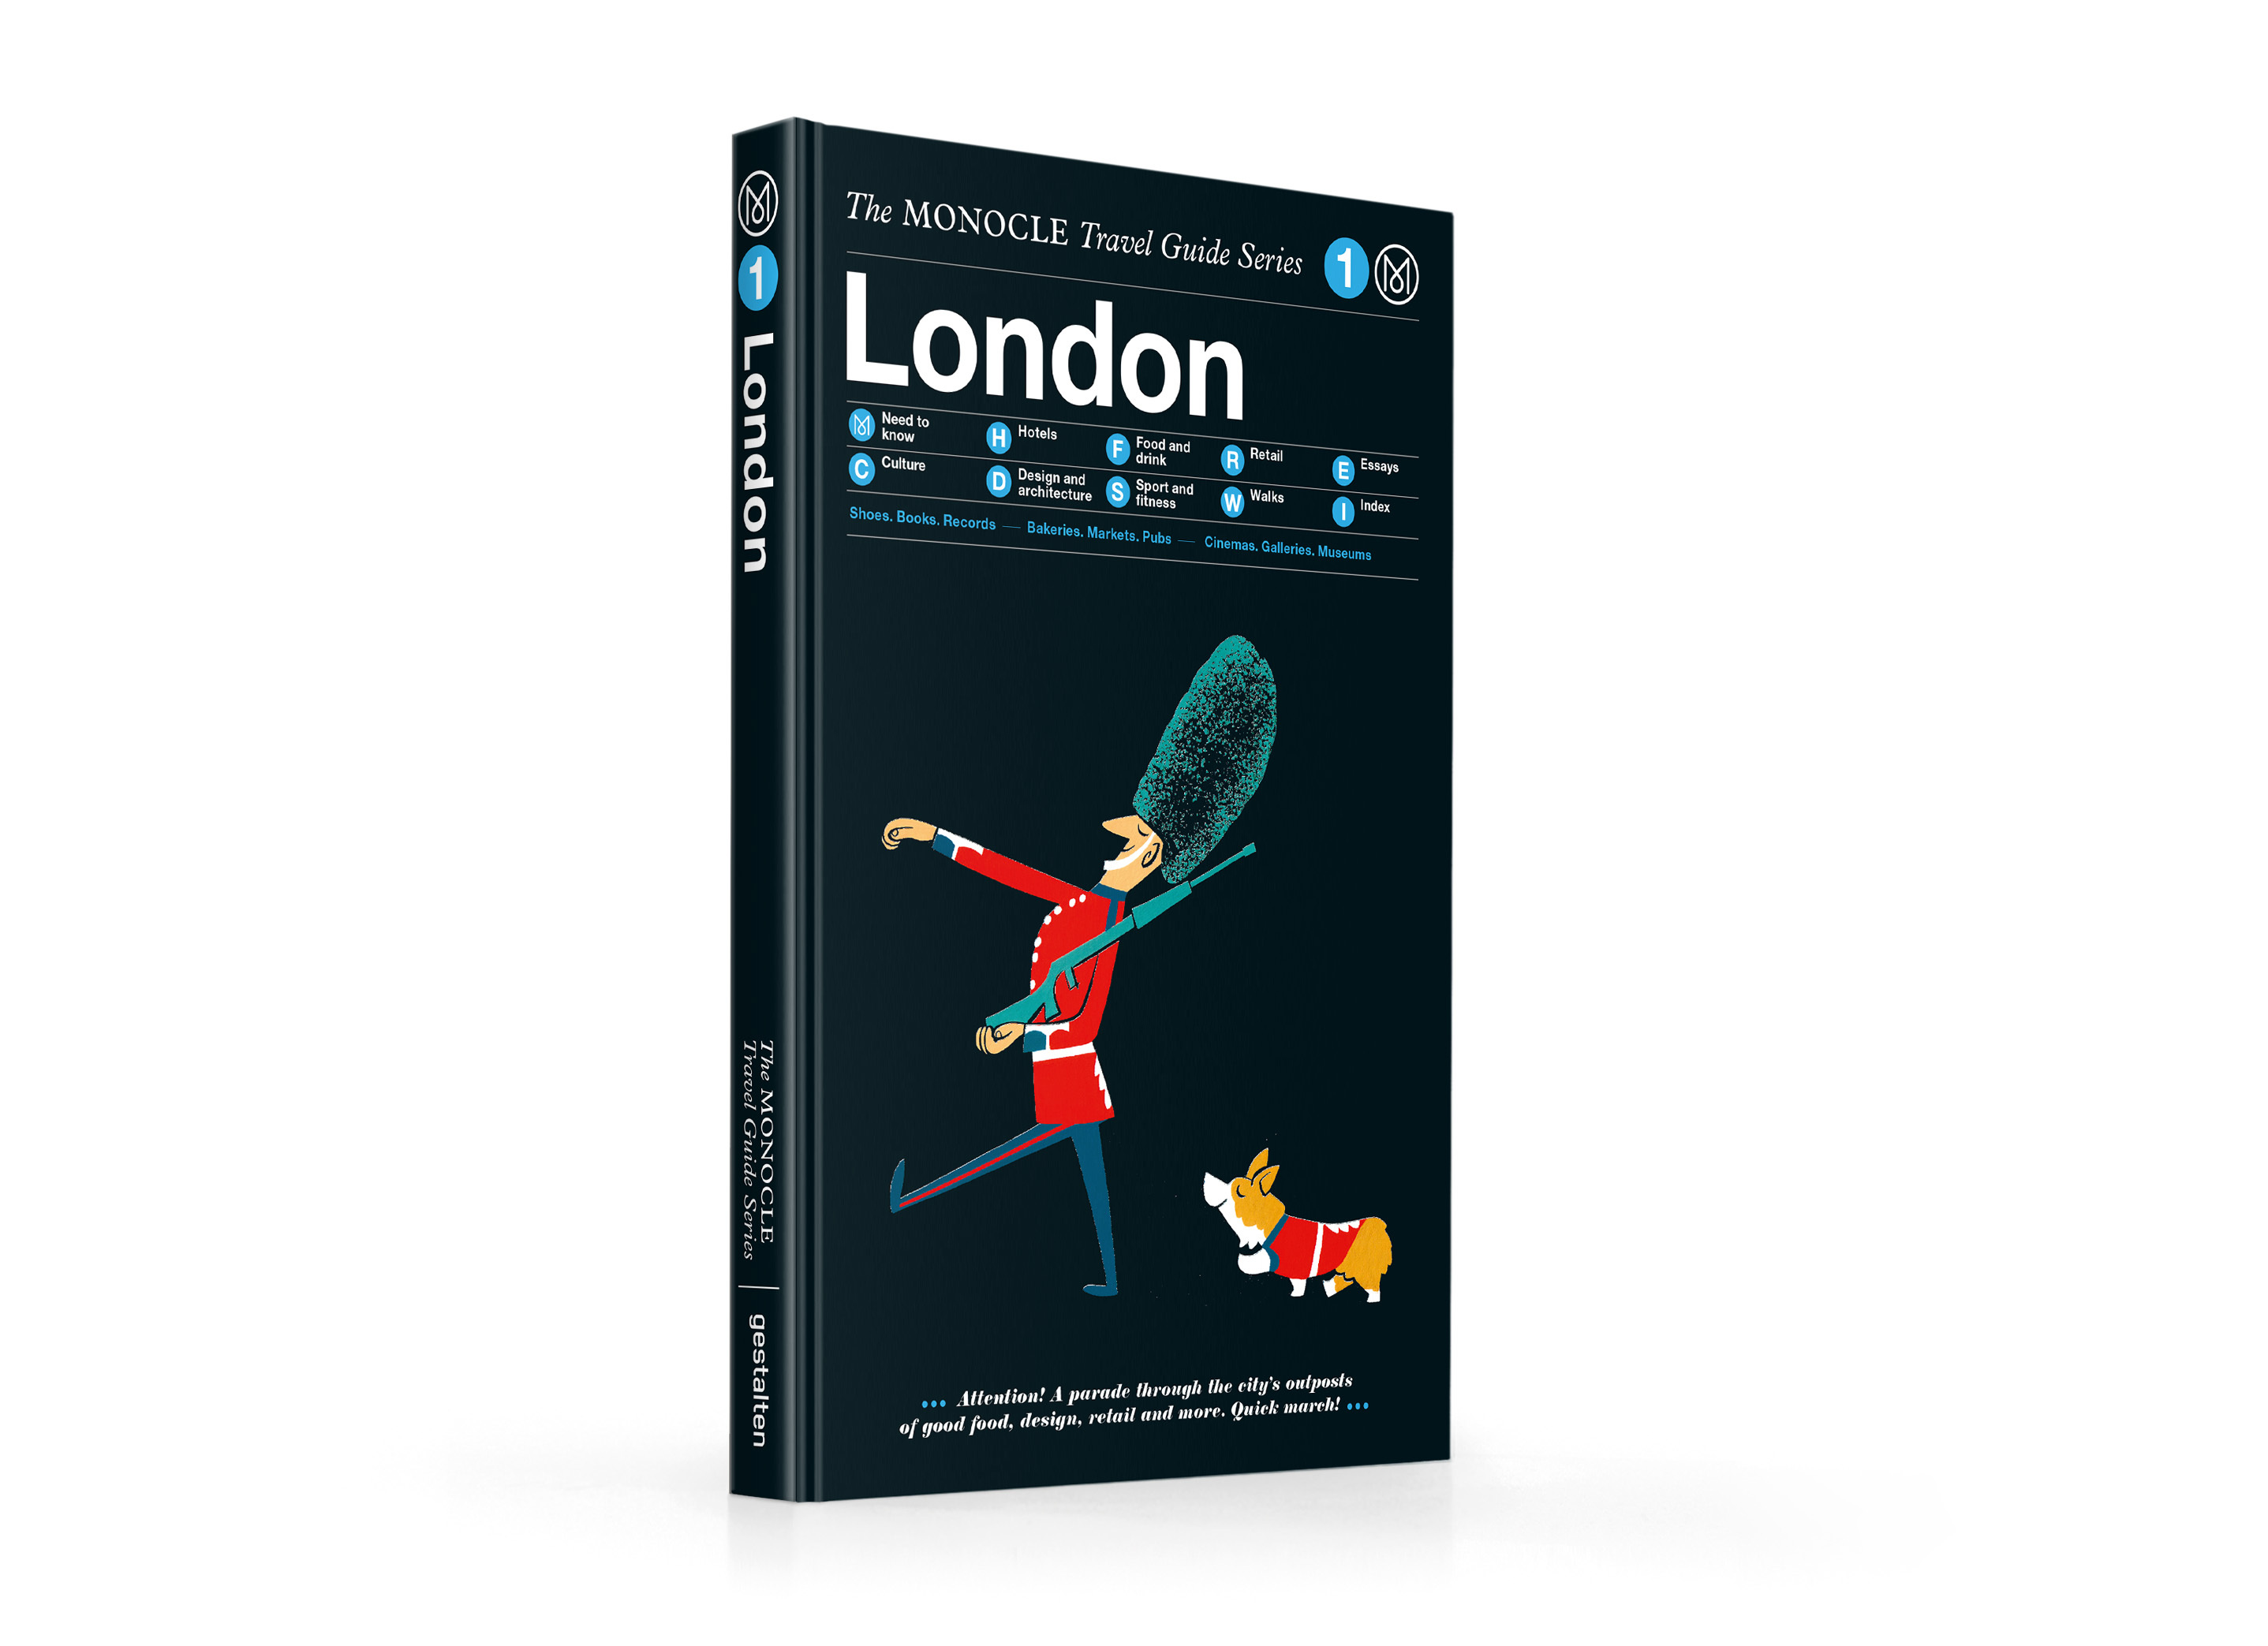 MONOCLE TRAVEL GUIDE: LONDON